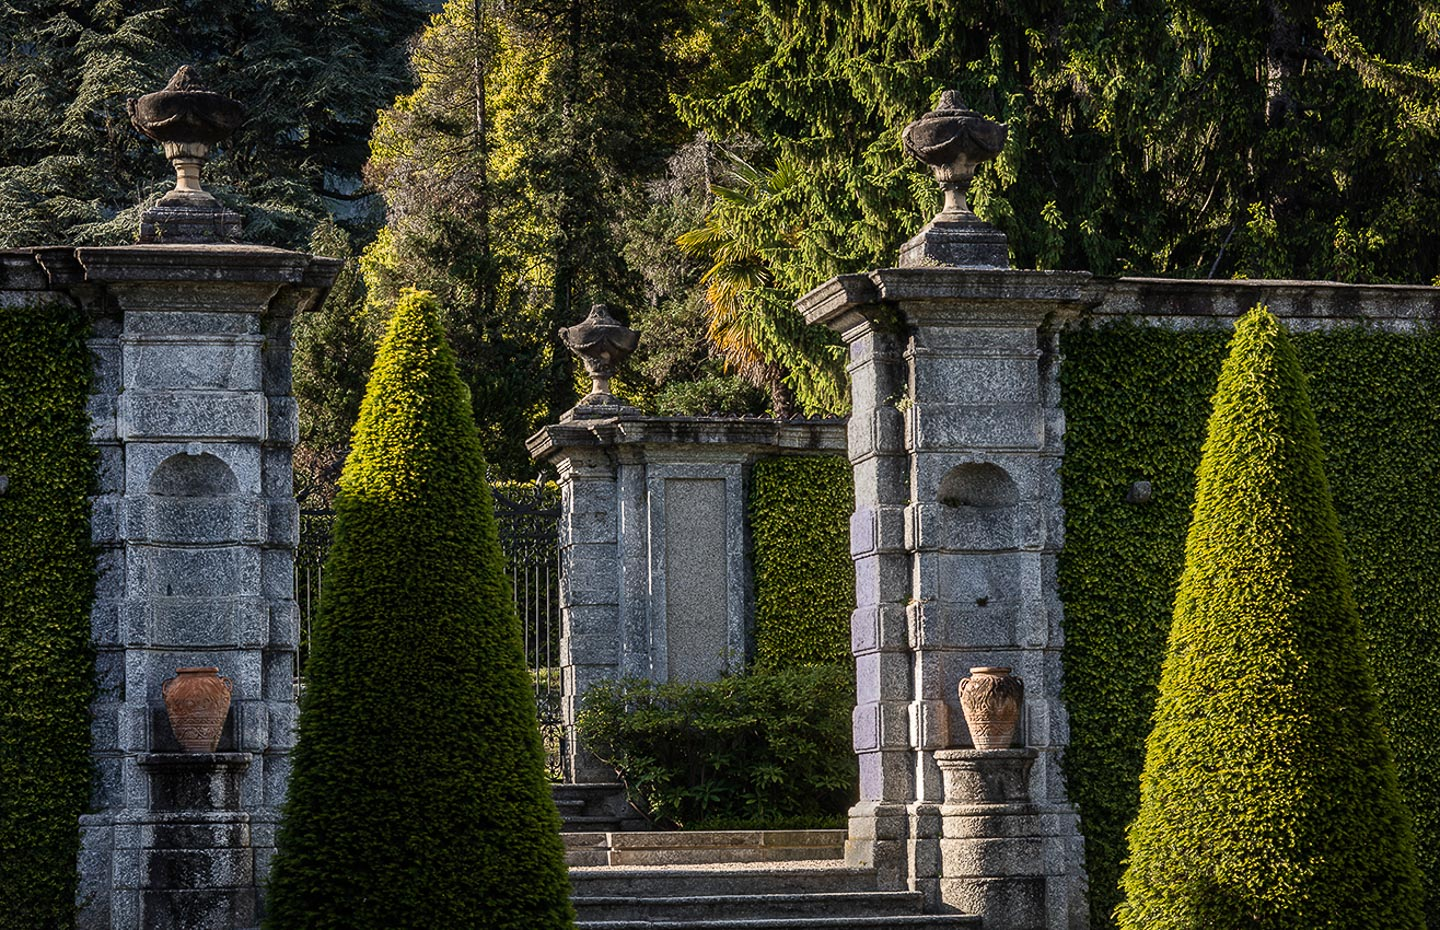 Villa Balbiano luxury property Lake Como Milan private access park gardens swimming pool boat service exquisite plants trees flowers garden design